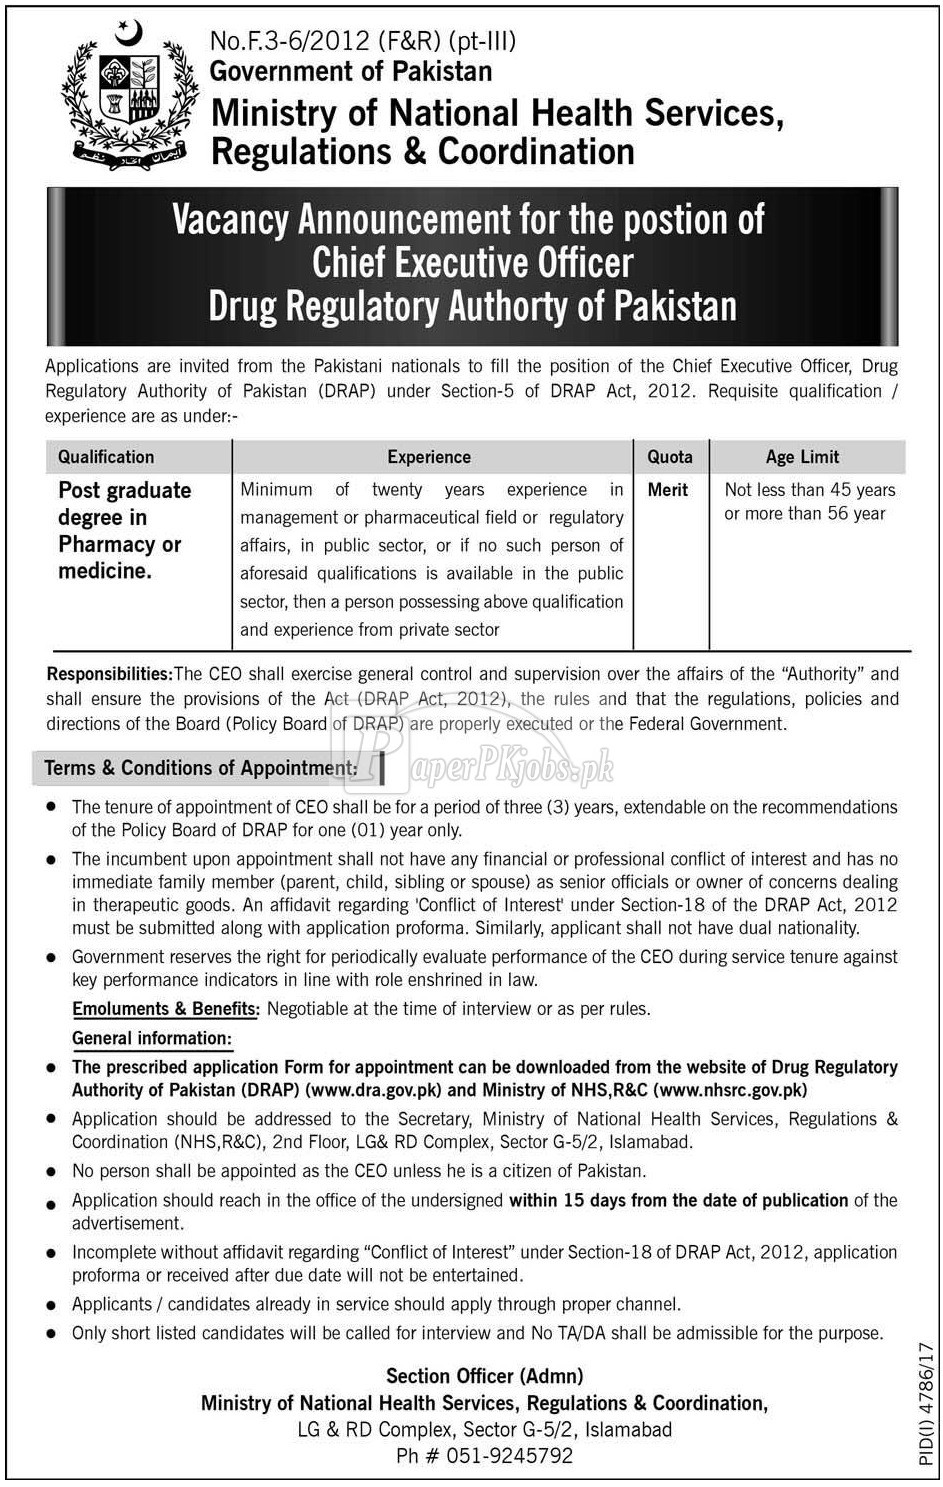 Ministry of National Health Services Regulations & Coordination Jobs 2018